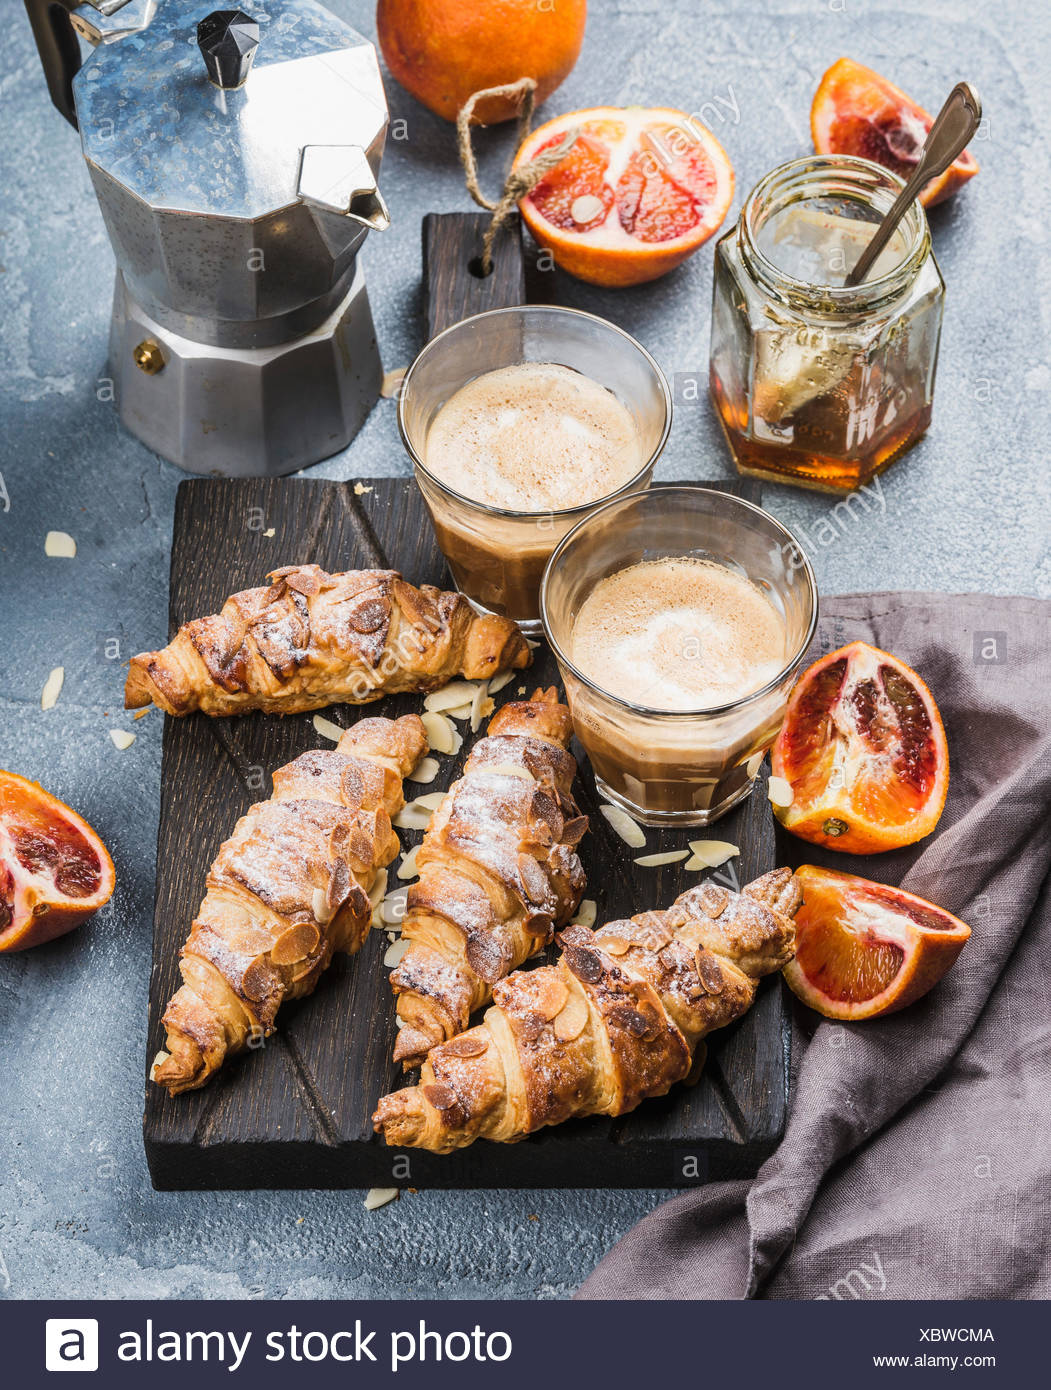 Italian style home breakfast. Latte coffee almond croissants and red bloody oranges on dark wooden serving  board over concrete - Stock Image